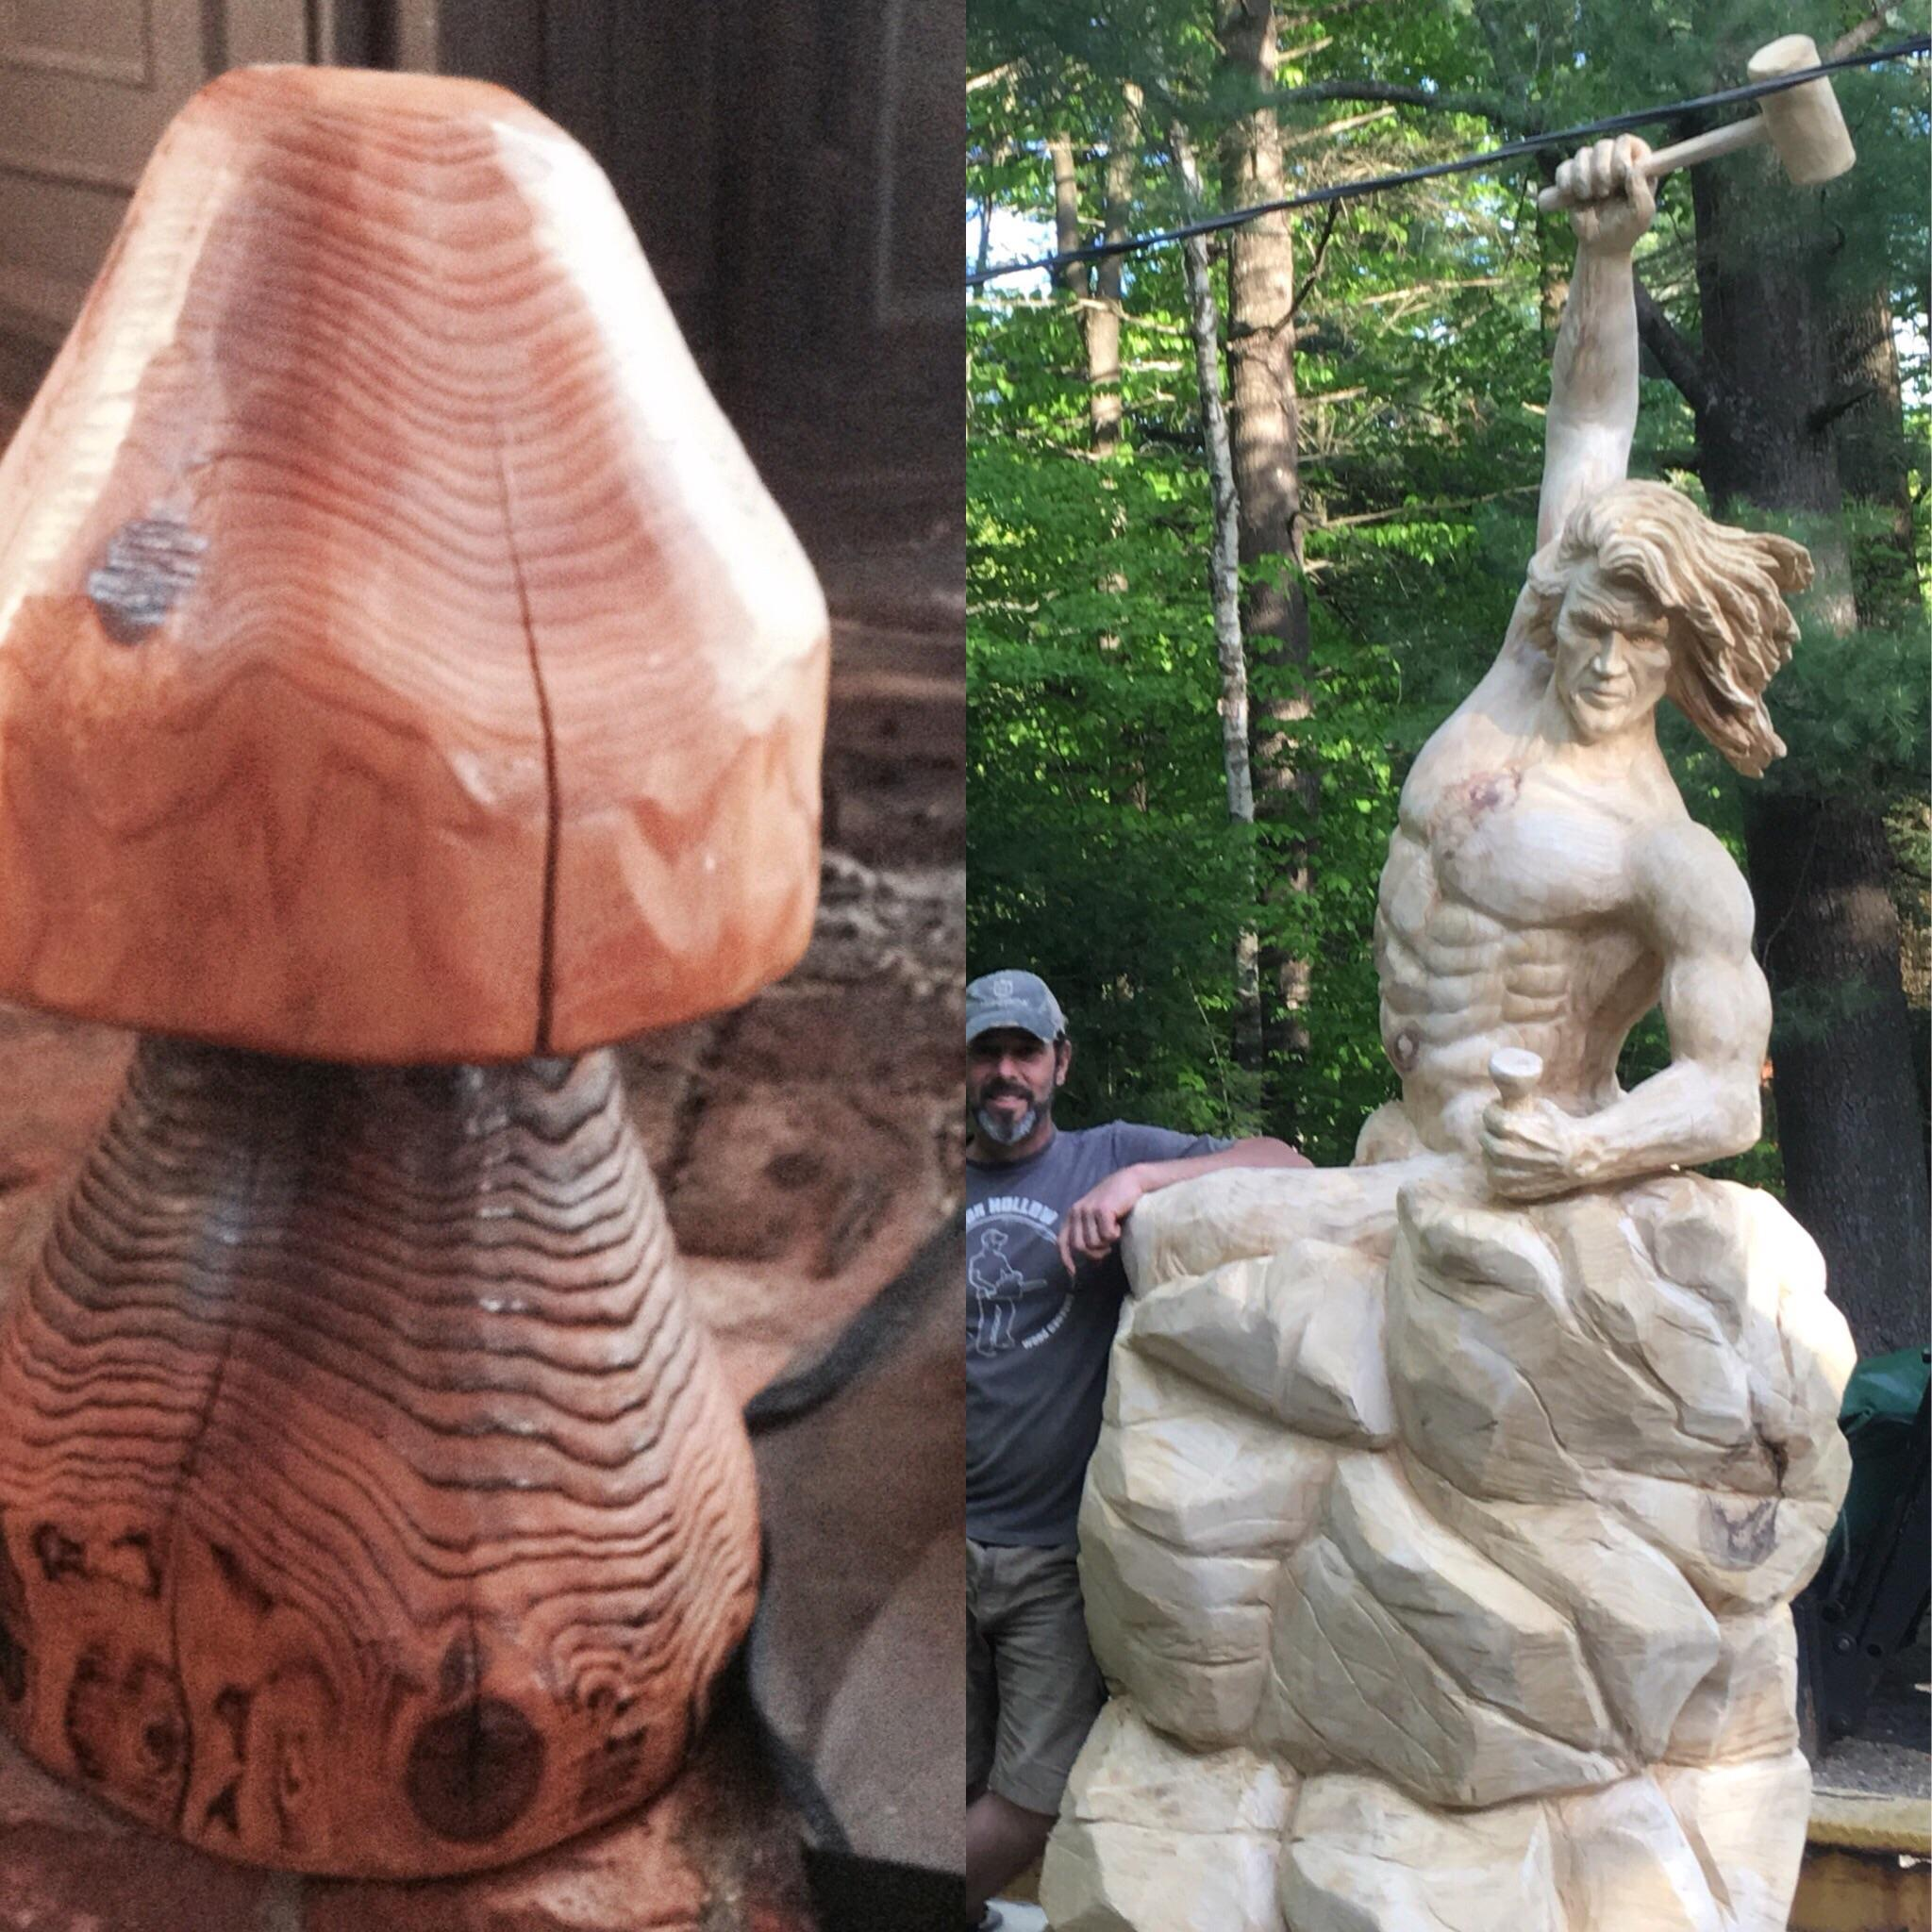 [image] Find Your Passion. Burnt out with corporate America, picked up a saw and carved a mushroom . 12 years later…